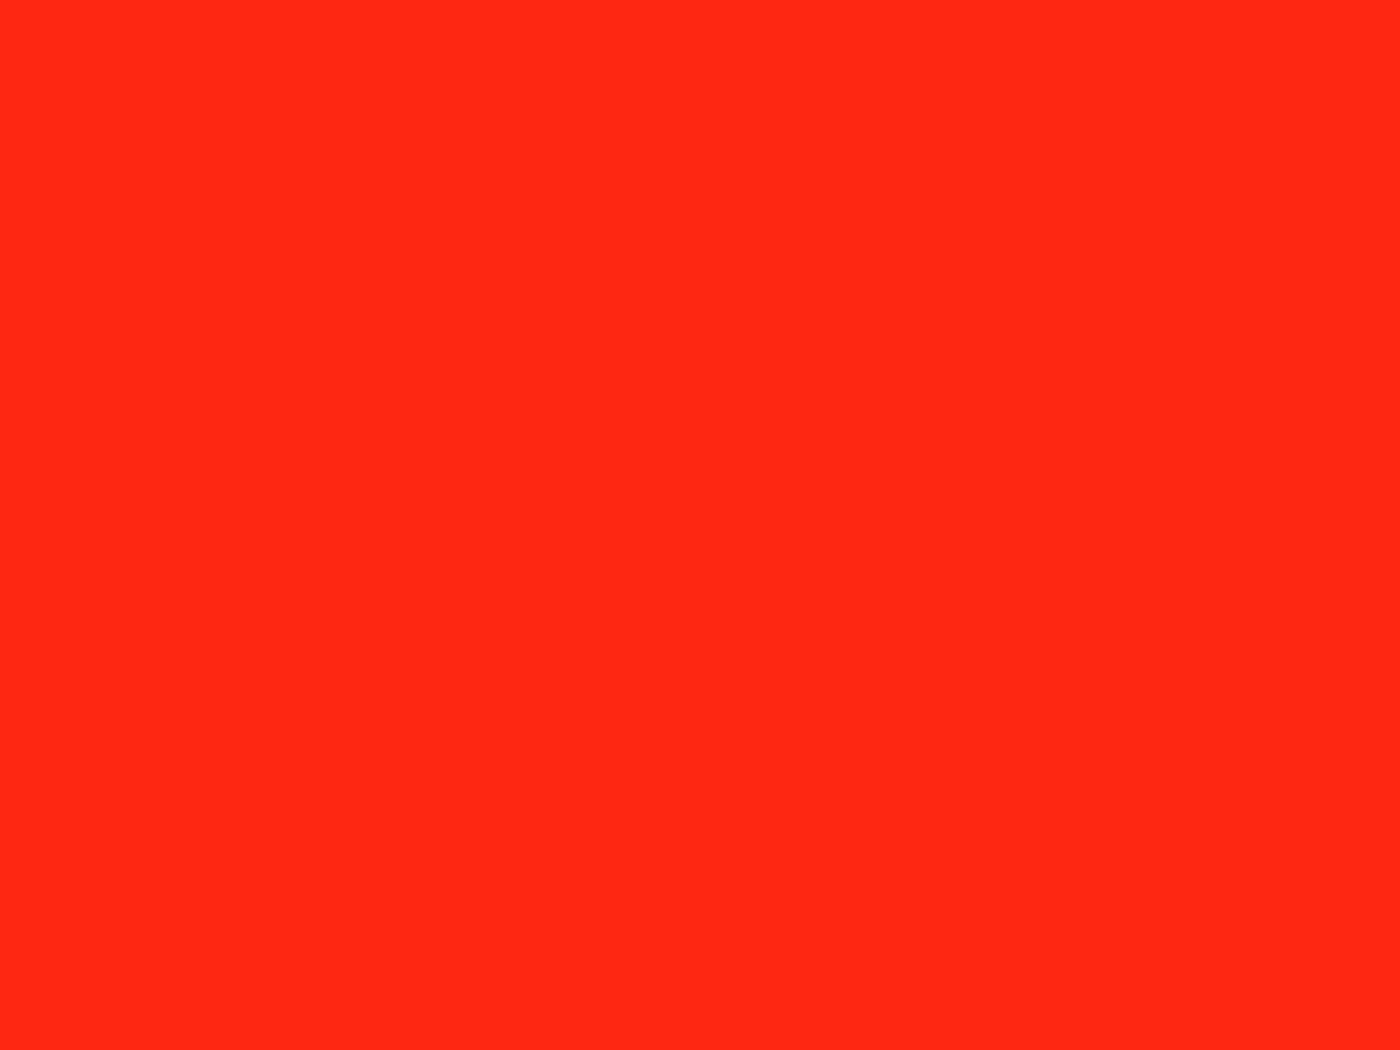 1400x1050 Red RYB Solid Color Background